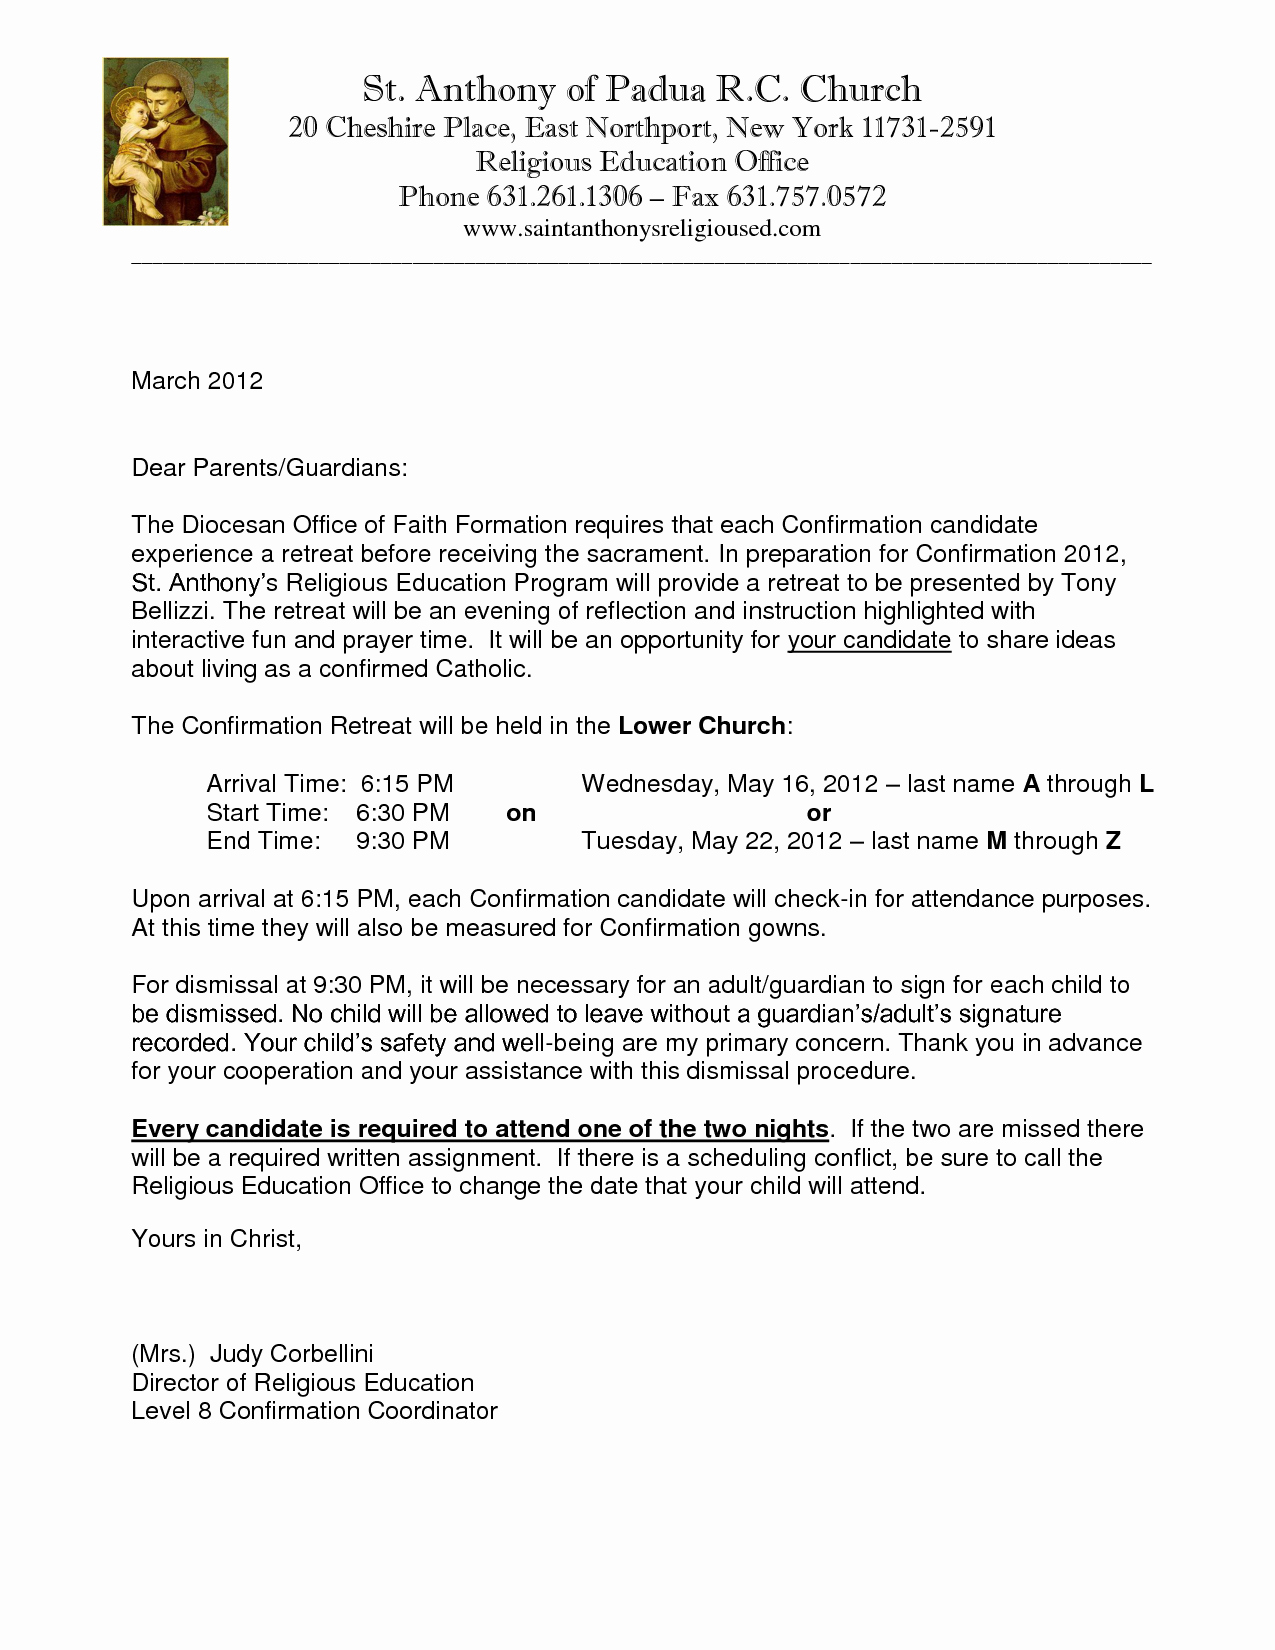 Kairos Retreat Letter Examples Awesome Catholic Confirmation Retreat Letter Sample